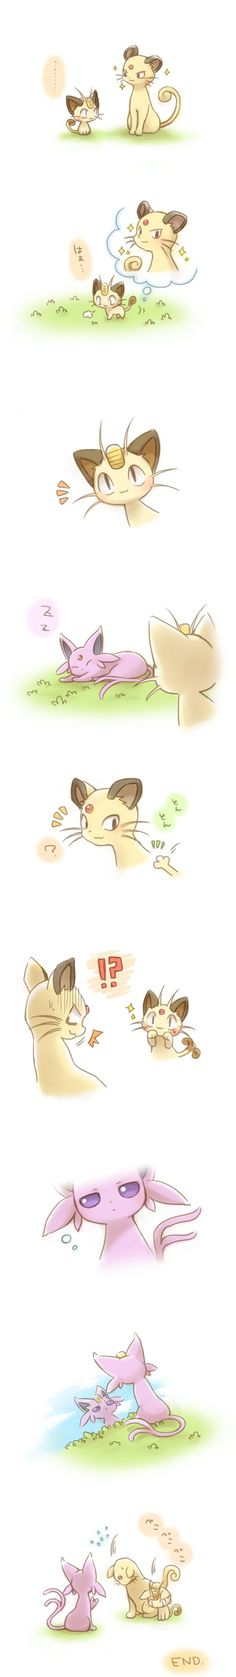 Pokemon so cute Pokemon Comics, Pokemon Funny, Pokemon Memes, Pokemon Go, Pokemon Meowth, Pokemon Stuff, Mini Comic, Fred Astaire, Pokemon Fusion